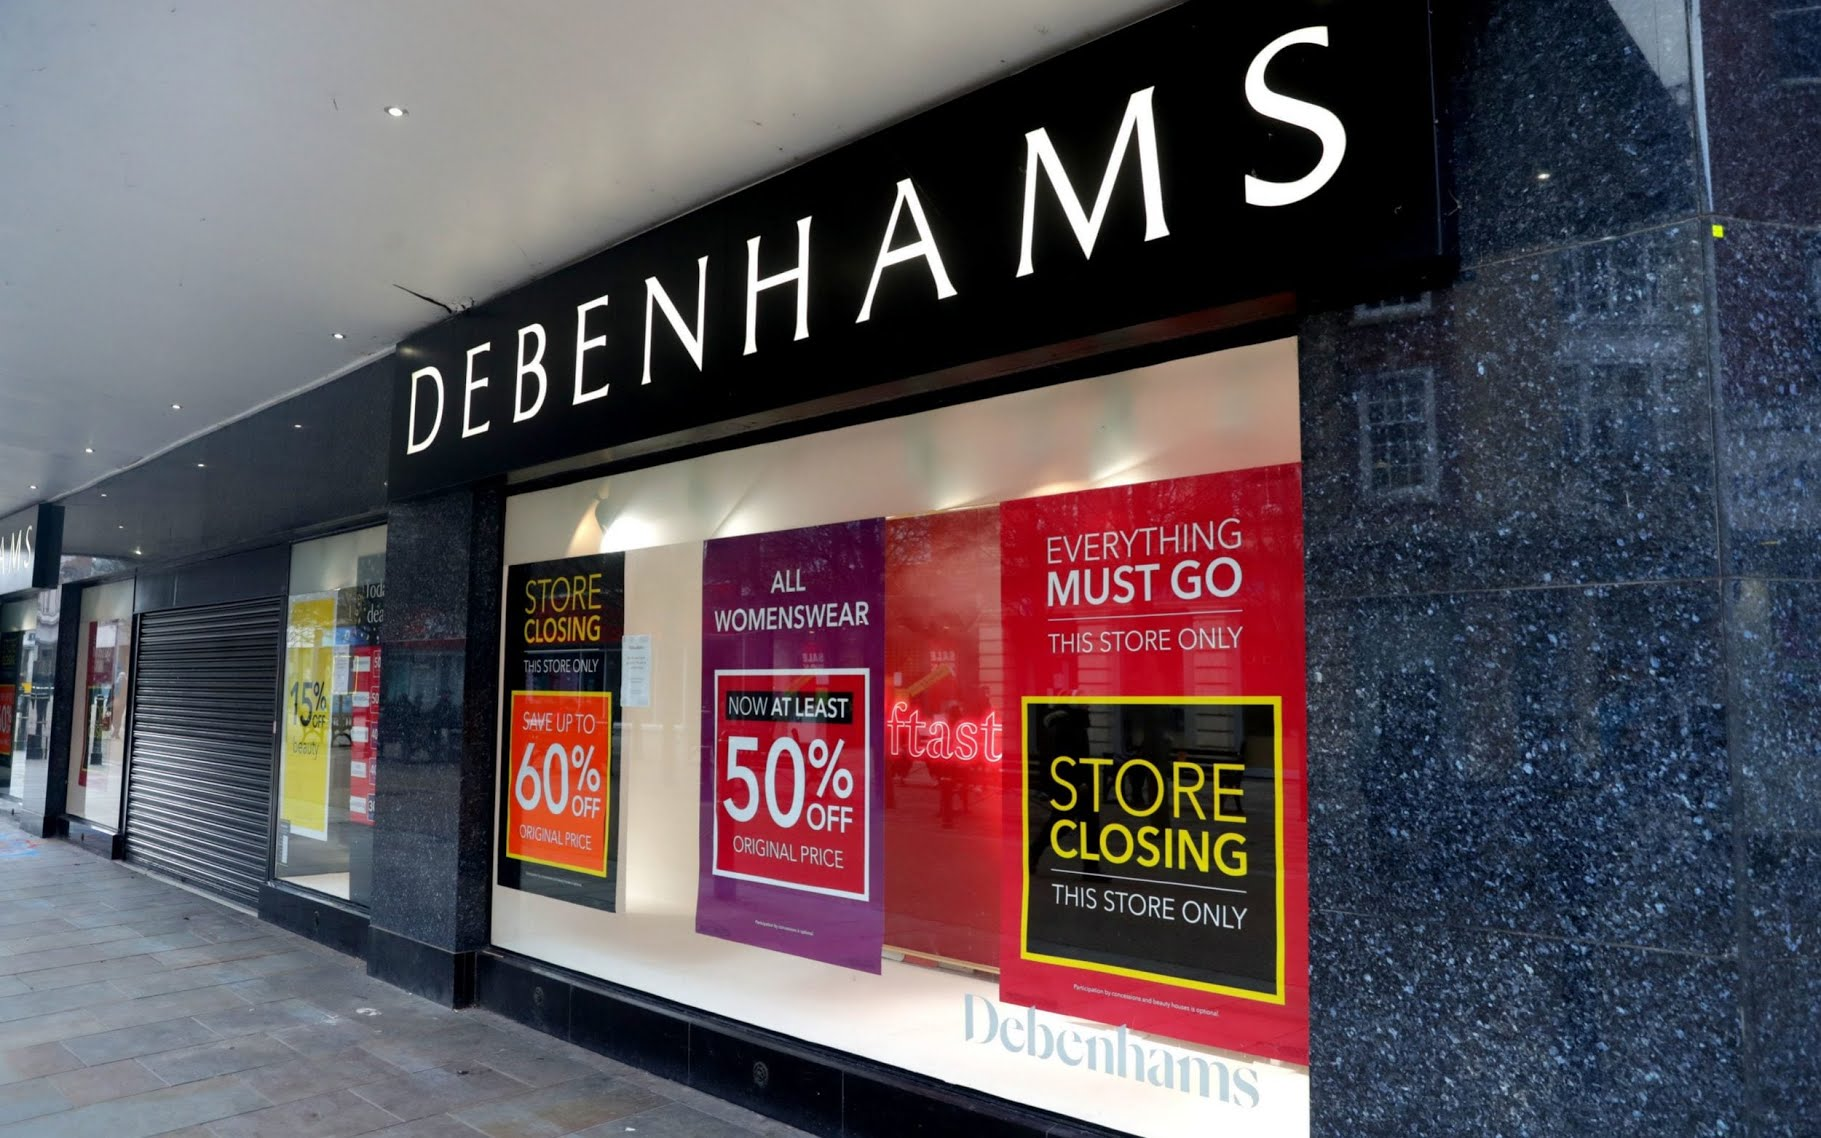 17,500 chain stores closed last year in pandemic retail carnage